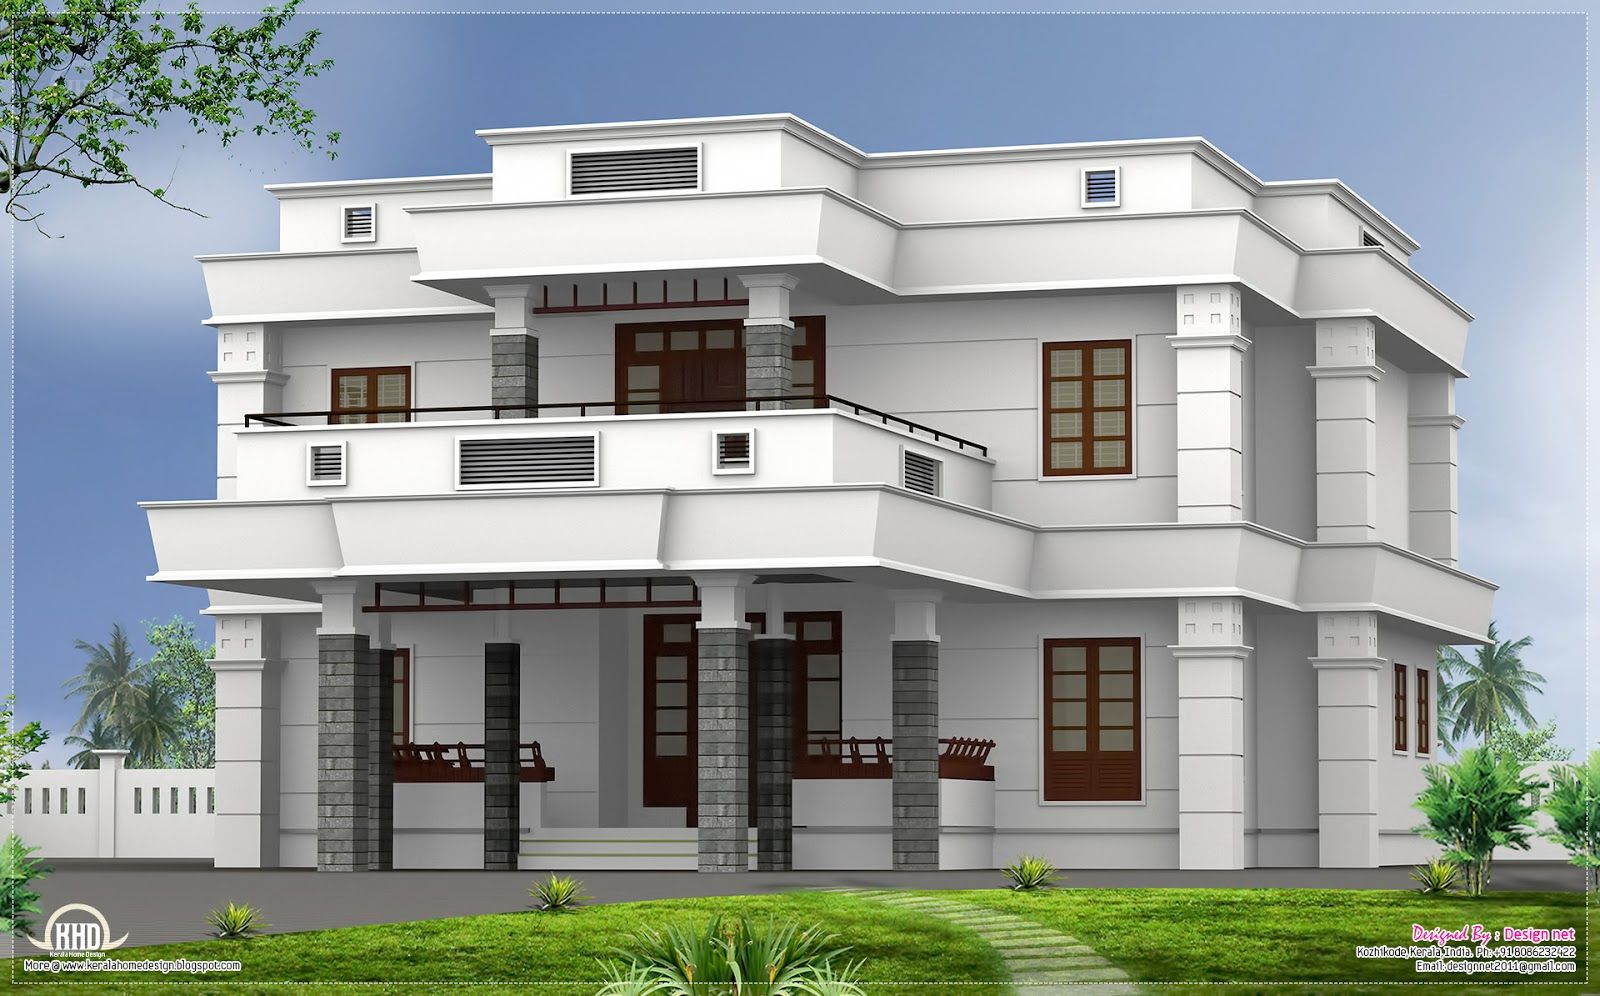 Flat roof homes designs bhk modern flat roof house for Kerala home design flat roof elevation